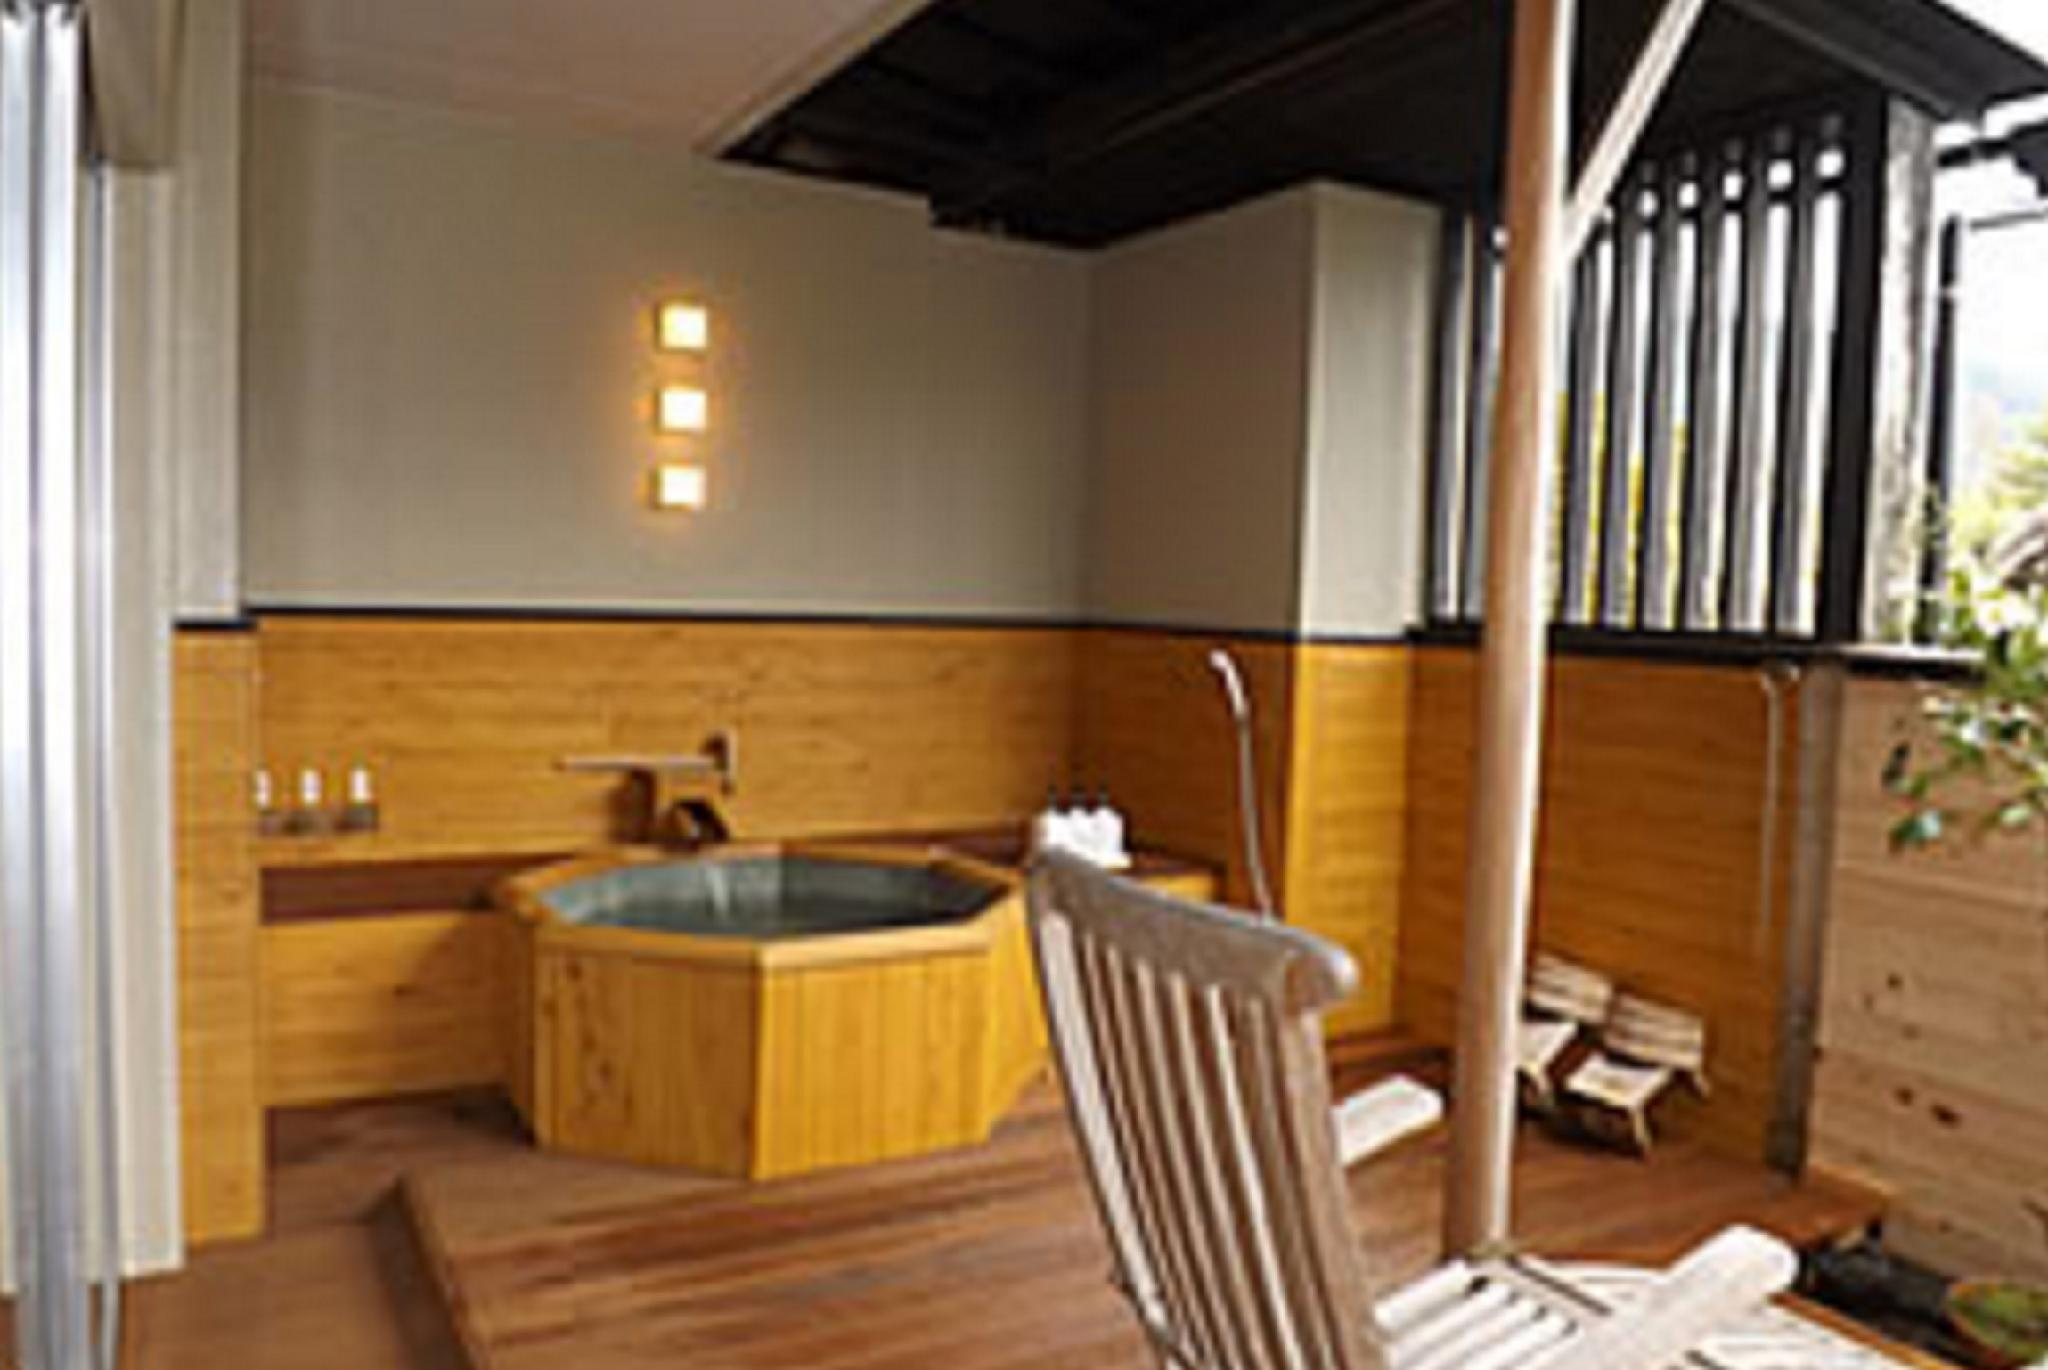 和室(5名・露天風呂あり) (Japanese Style Room for 5 People with Open-Air Bath)